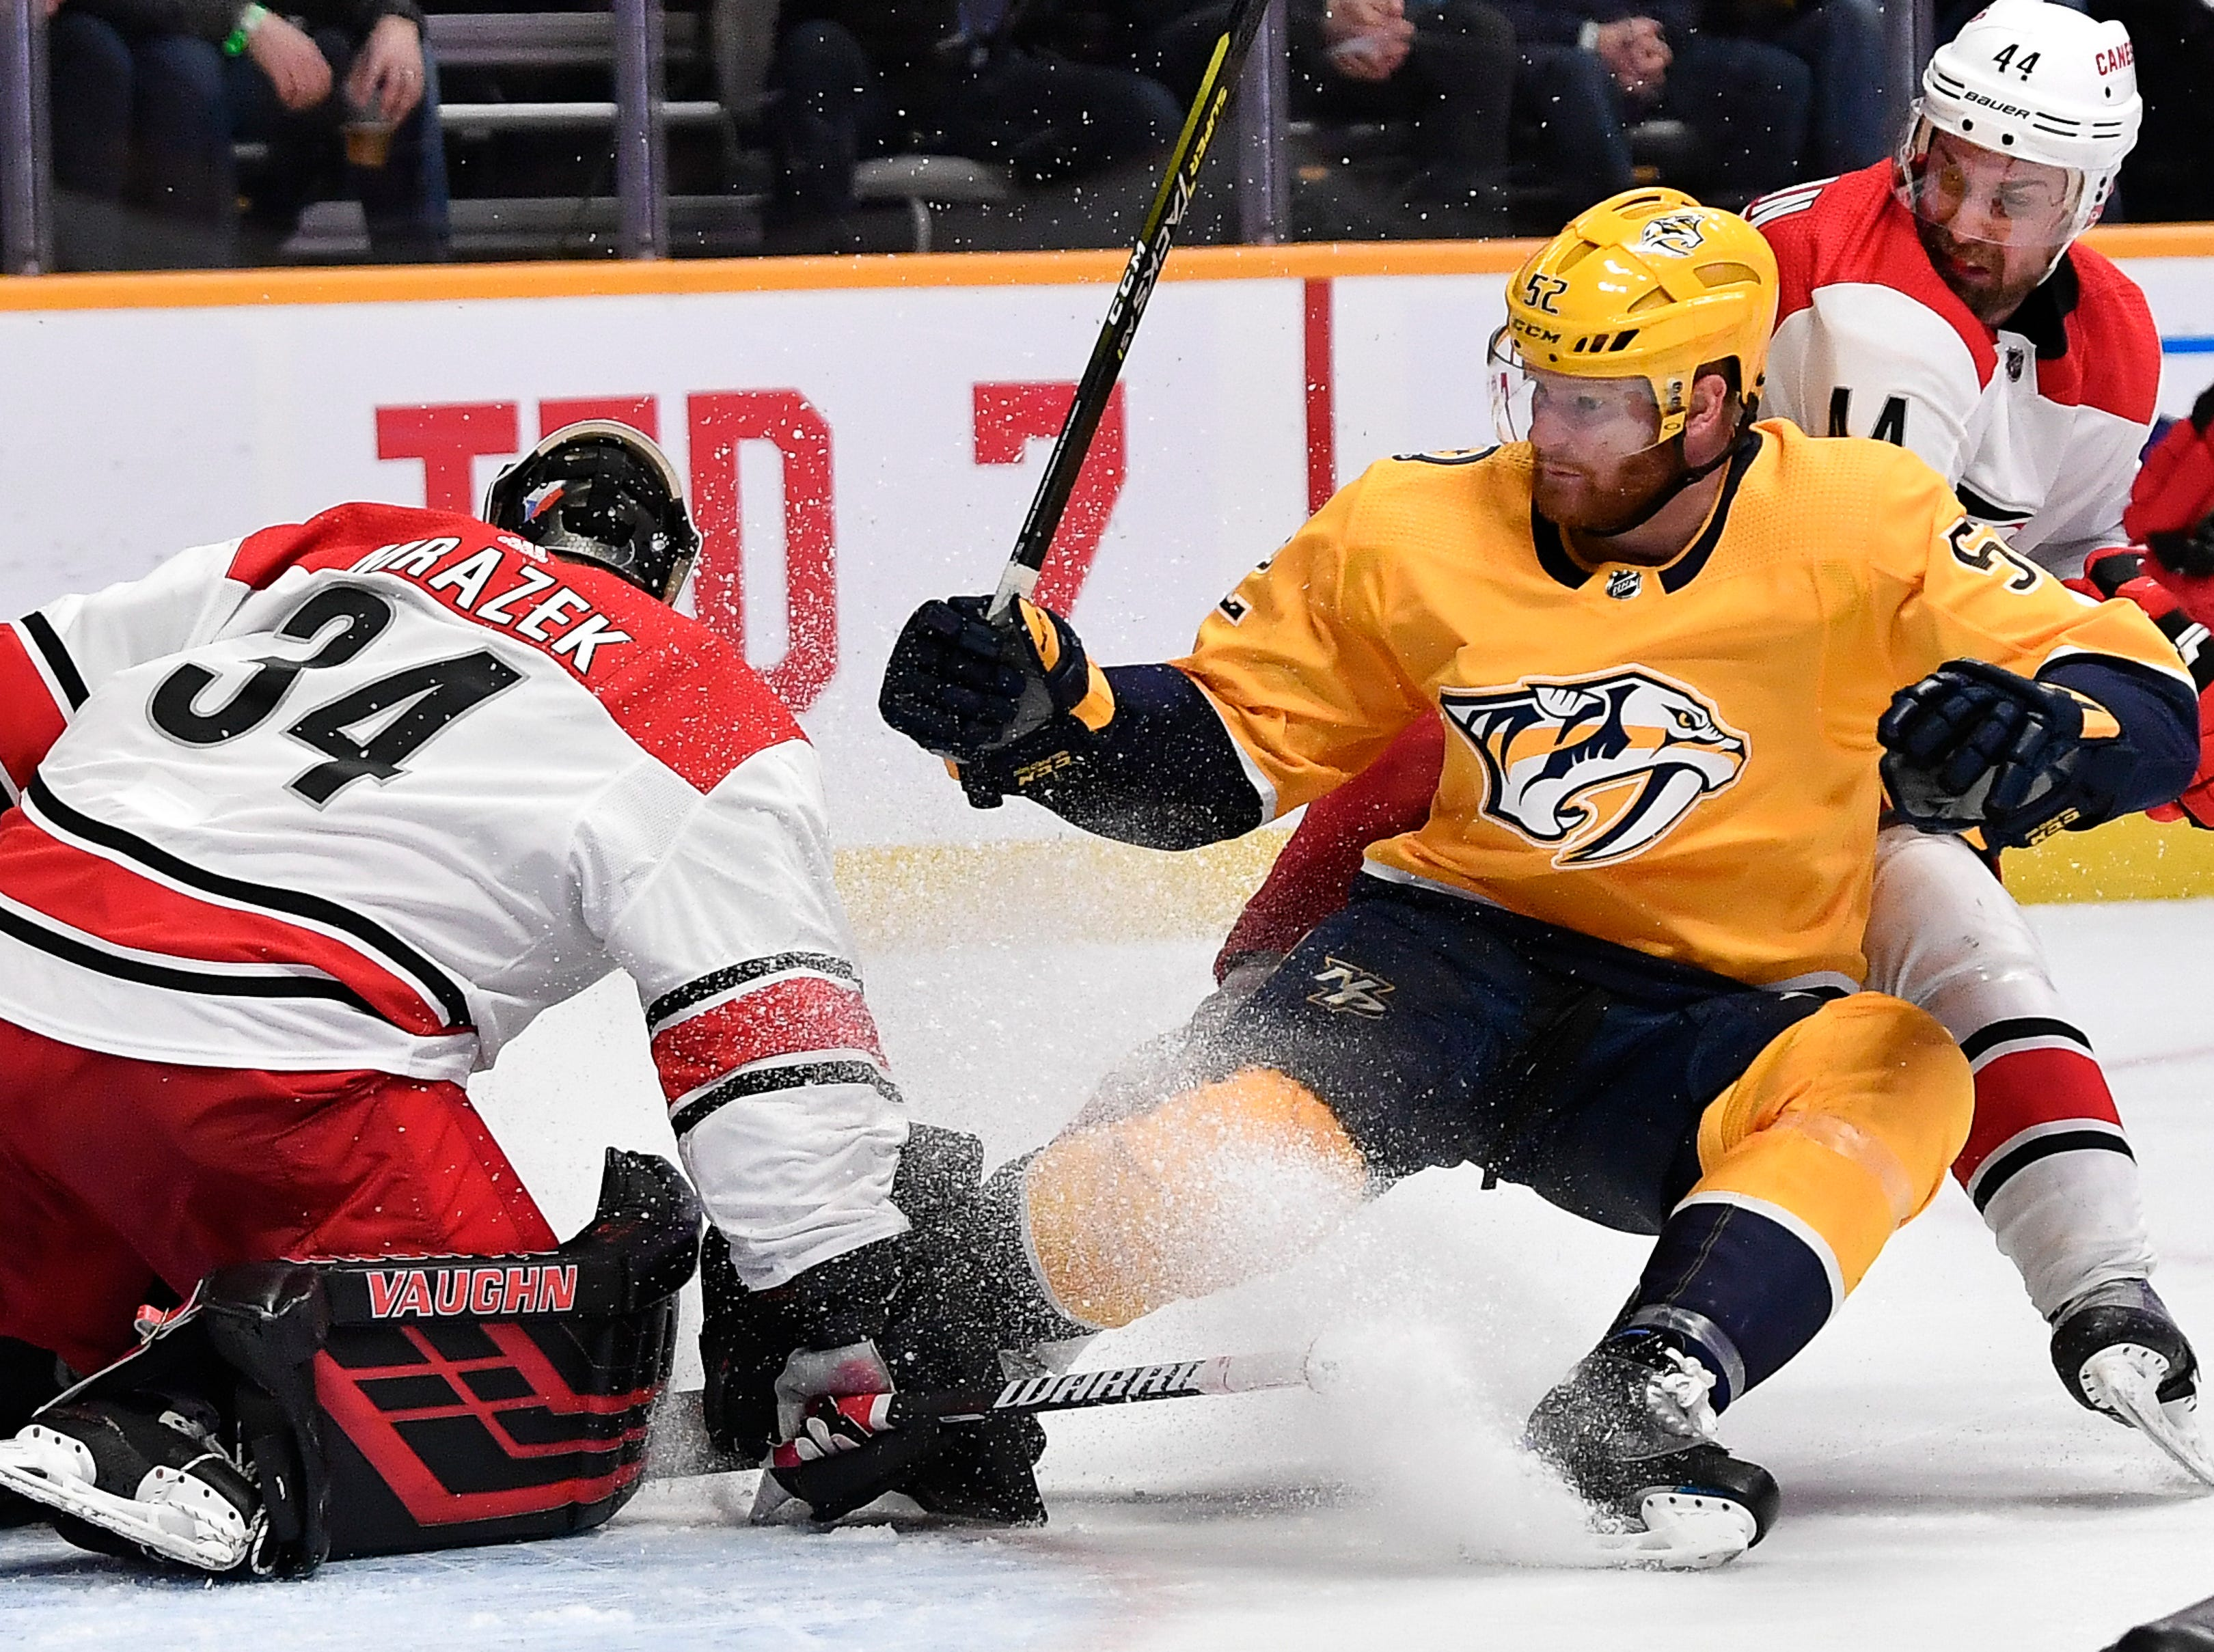 Mar. 9, 2019 Predators 3 Hurricanes 5:  Predators defenseman Matt Irwin (52) slides into Hurricanes goaltender Petr Mrazek (34) as he attacks the goal during the third period at Bridgestone Arena Saturday, March 9, 2019 in Nashville, Tenn.